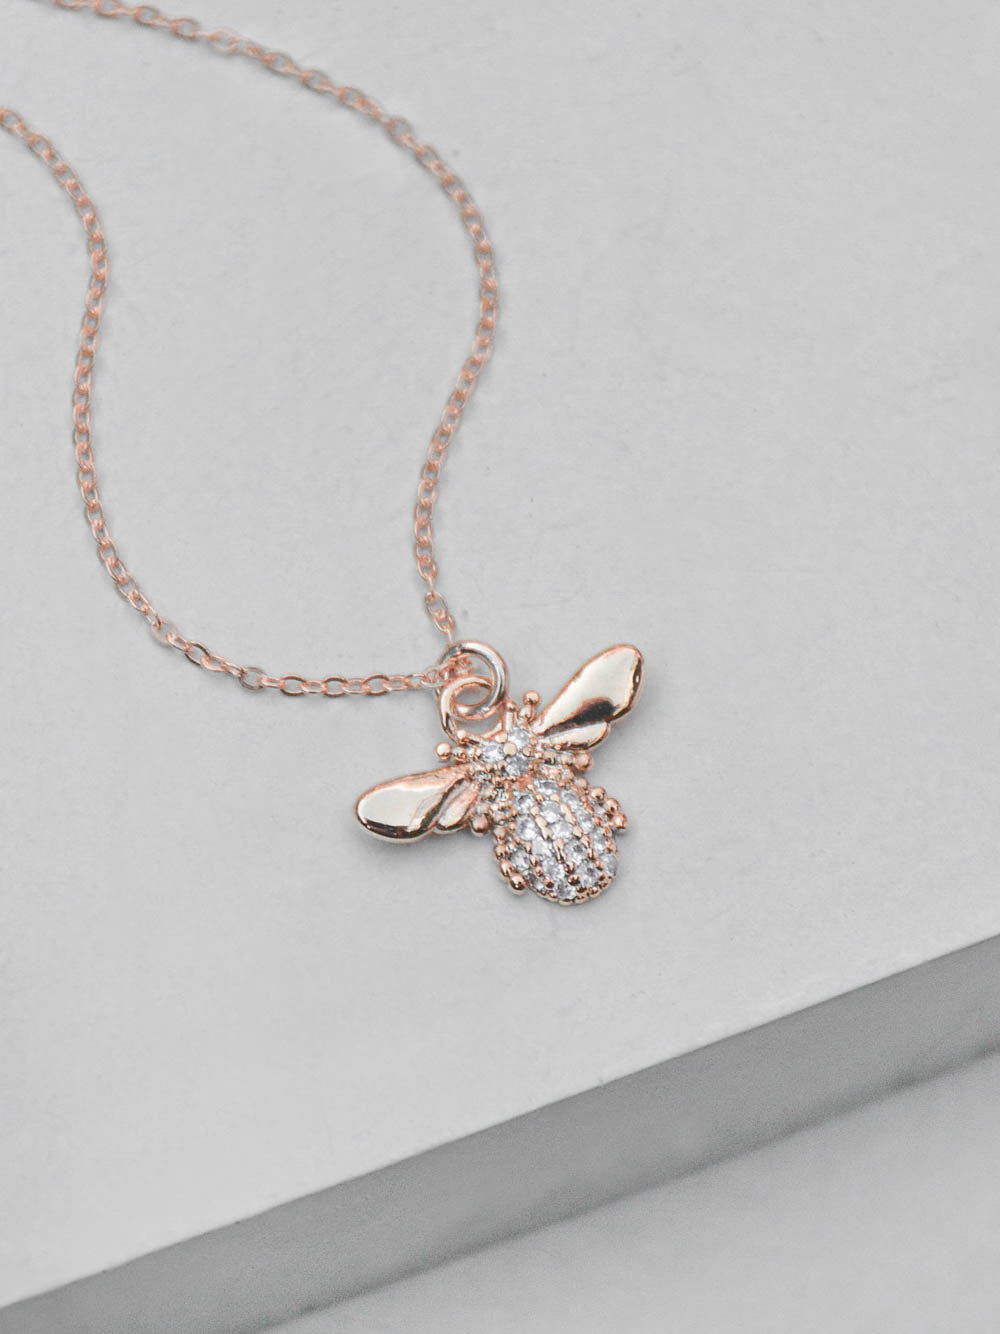 Bumble Bee Necklace - Rose Gold